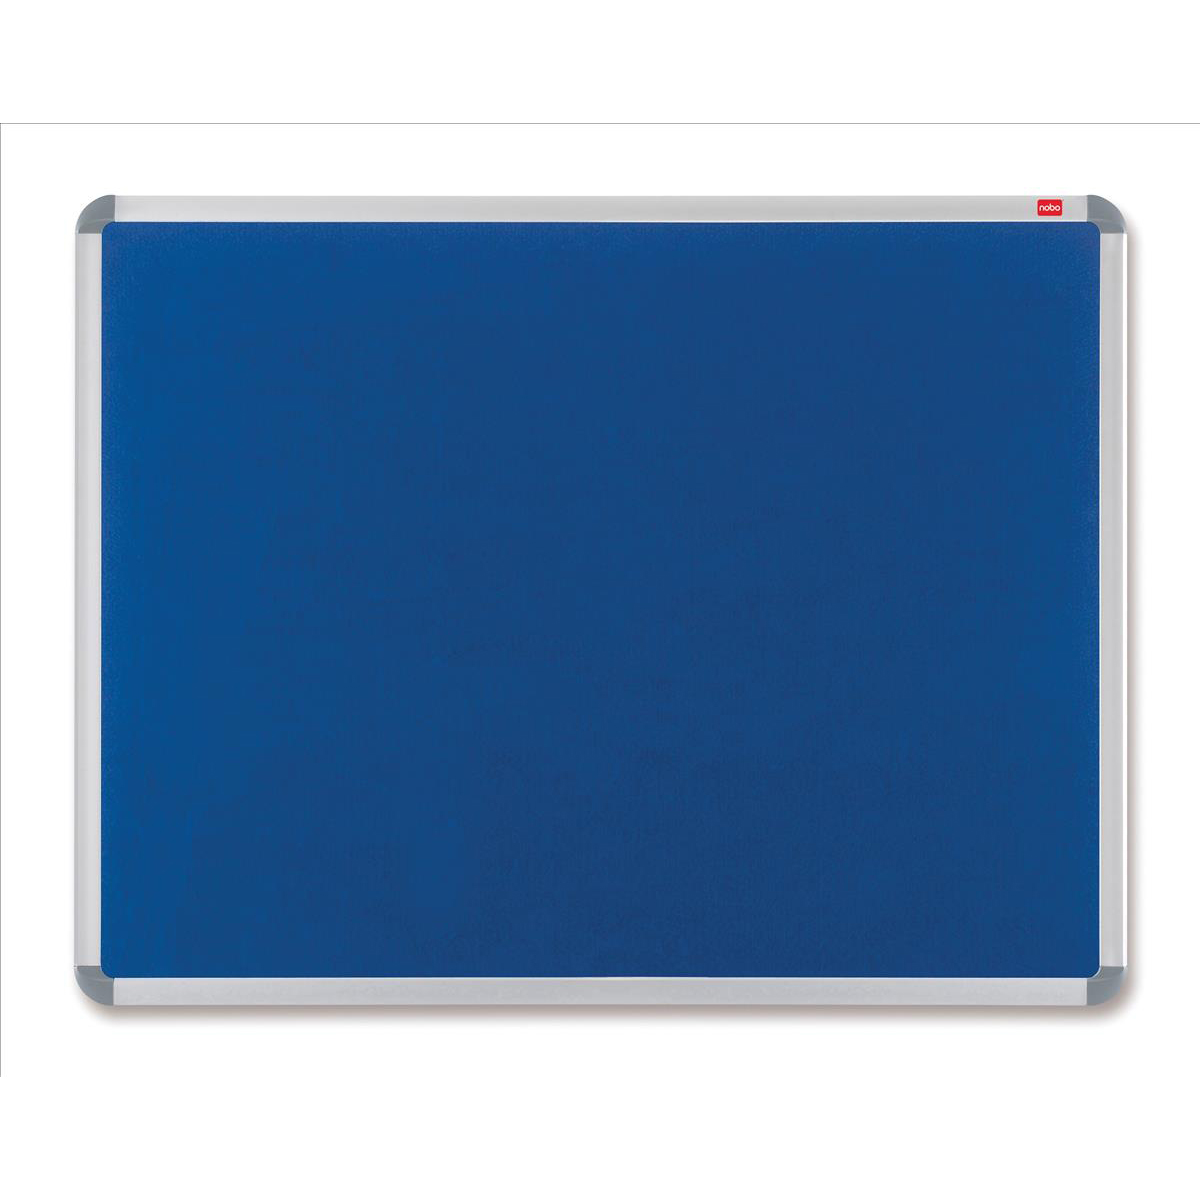 Felt **Nobo EuroPlus Felt Noticeboard with Fixings and Aluminium Frame W1500xH1000mm Blue Ref 30234148